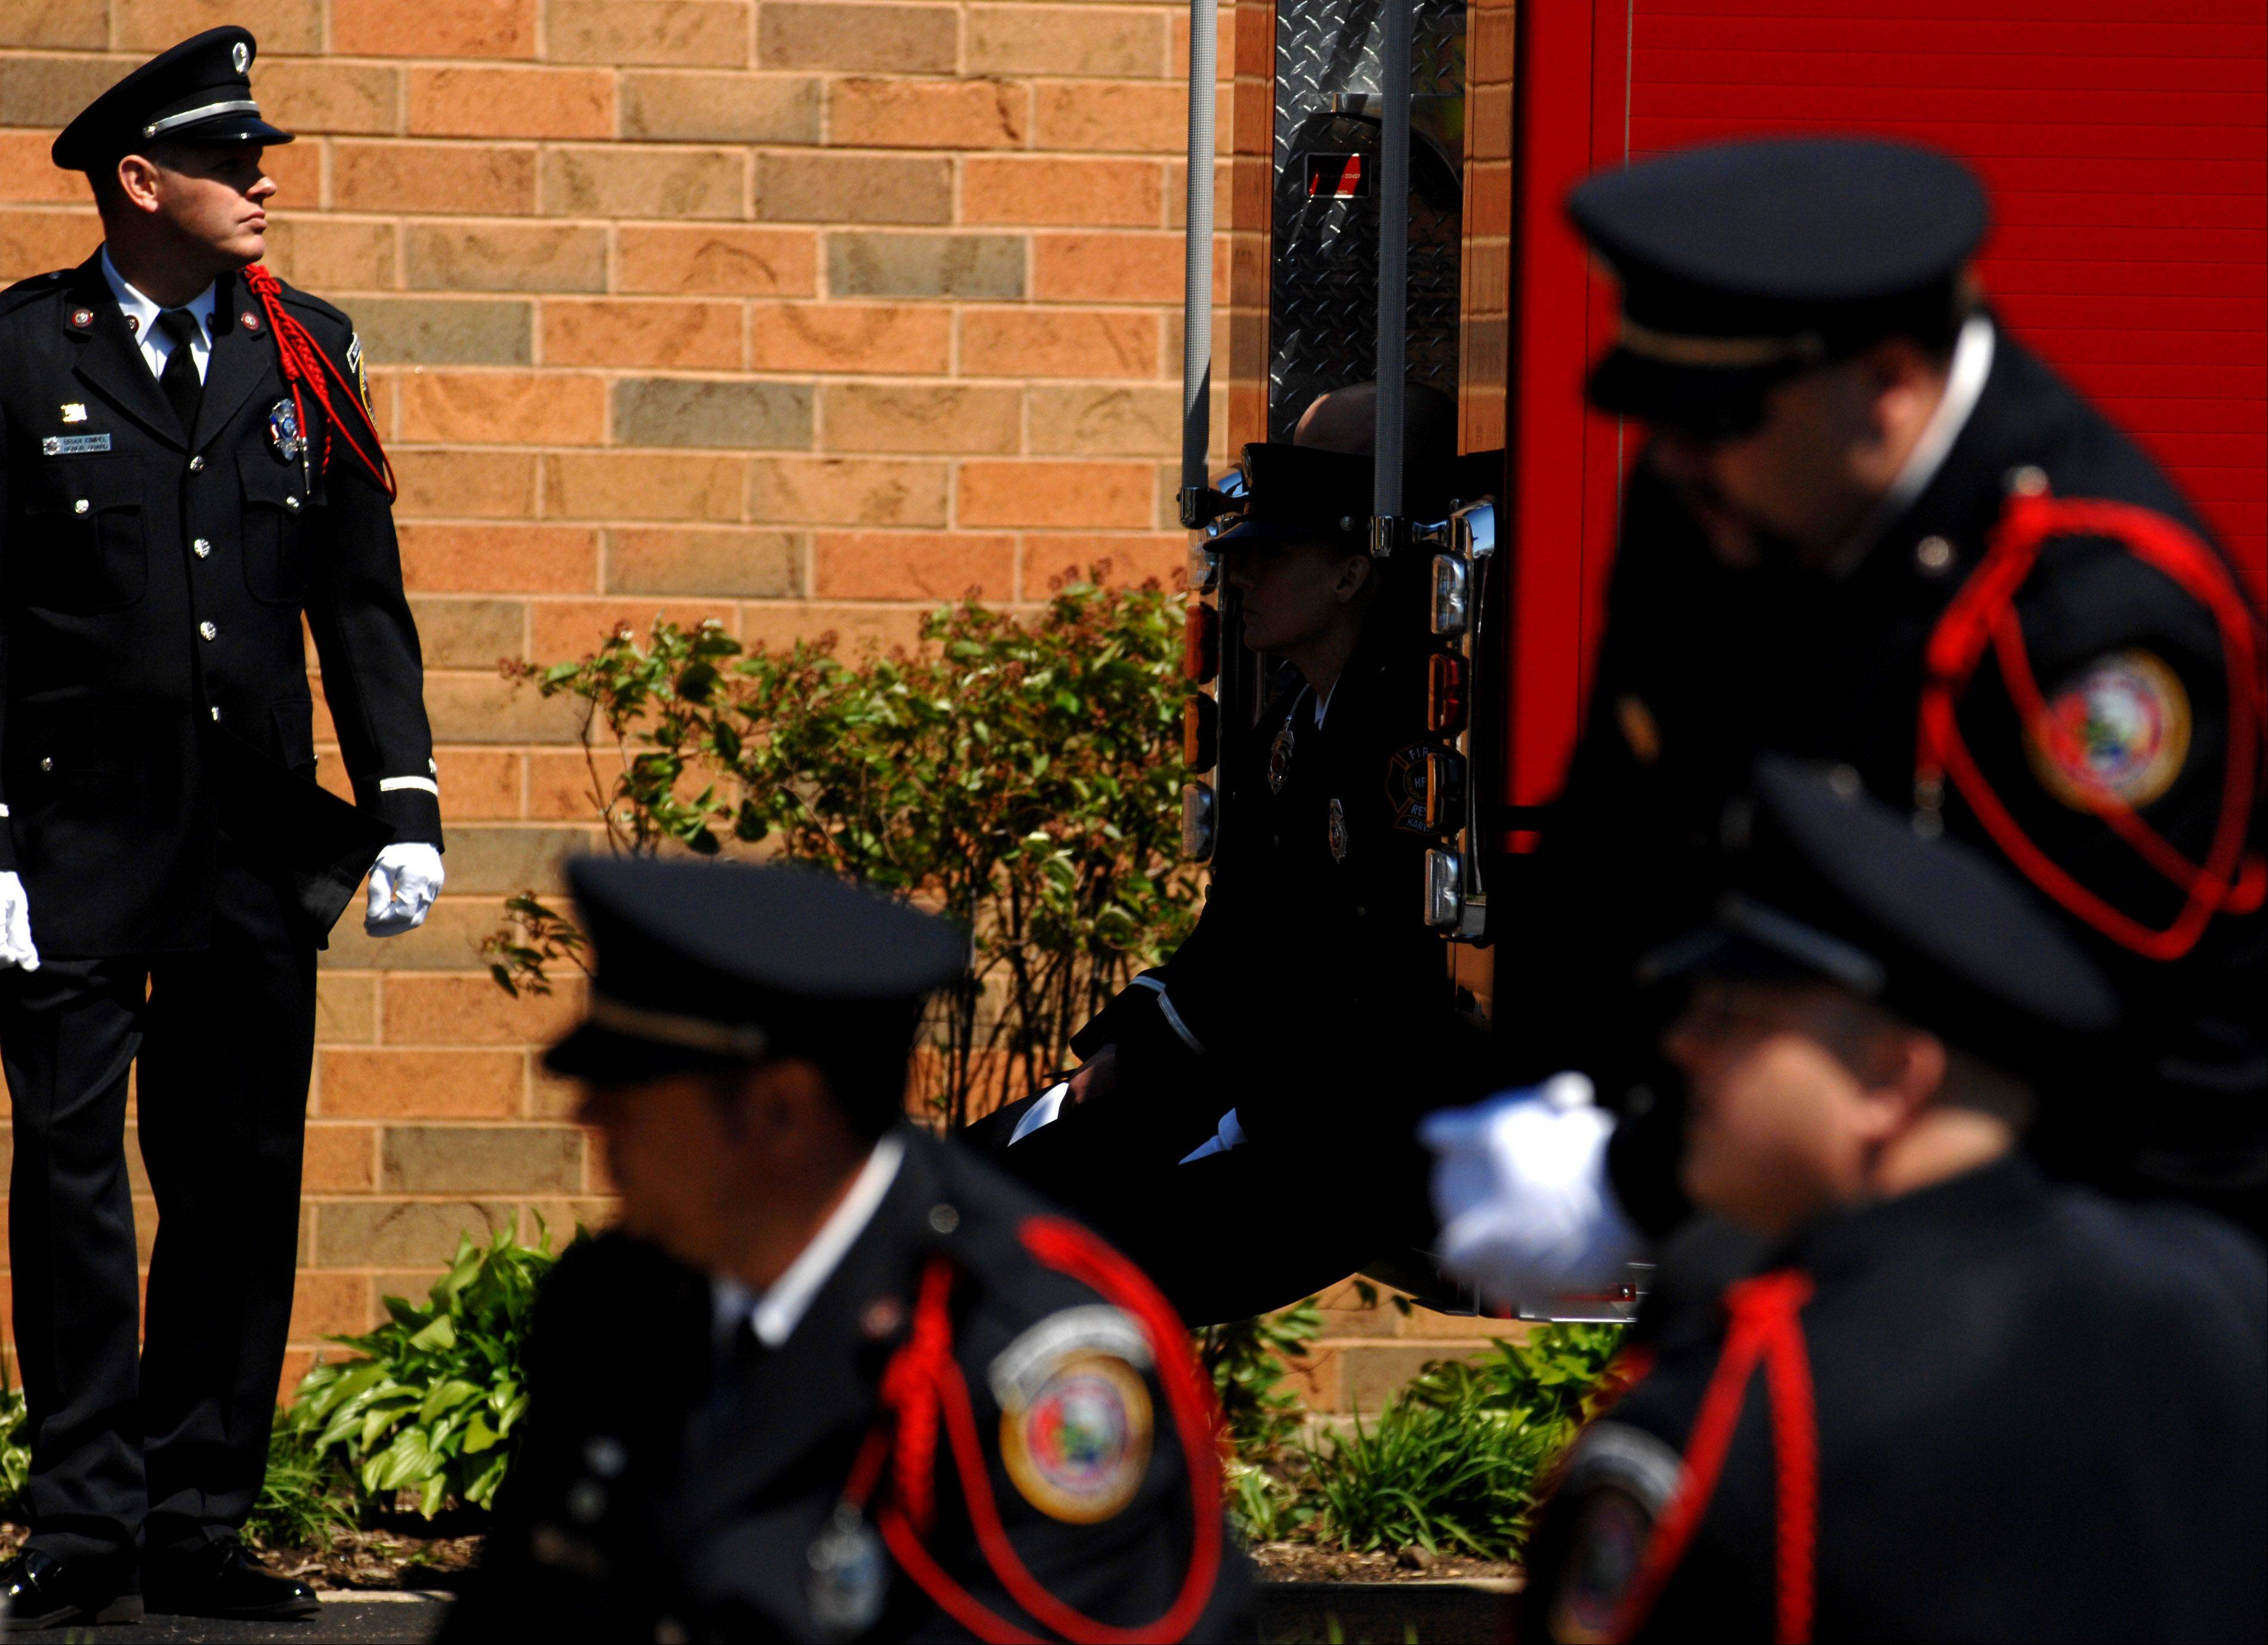 Members of the honor guard wait outside while funeral services go on for Huntley Fire Capt. John Winkelman at St. John's Lutheran Church in Union. Winkelman, 54, of Marengo, was killed in a motorcycle accident last week in Crystal Lake.